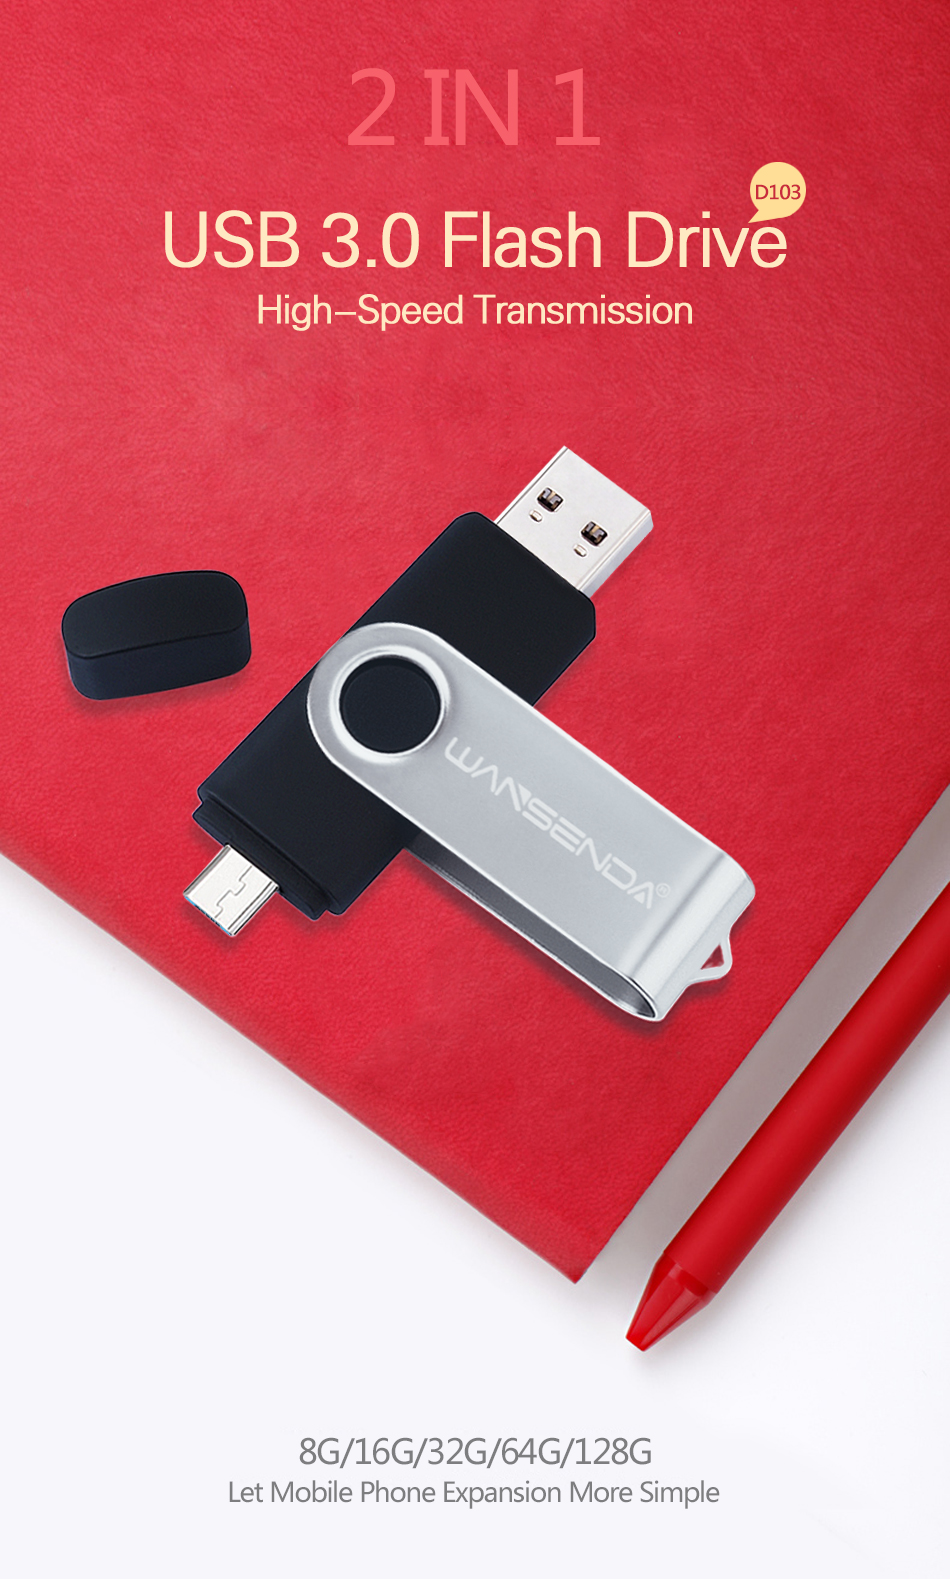 5 Lots 1G-32G Flash Memory Drives Memory Flash Stick Anti-Skid Swivel Pen Drives